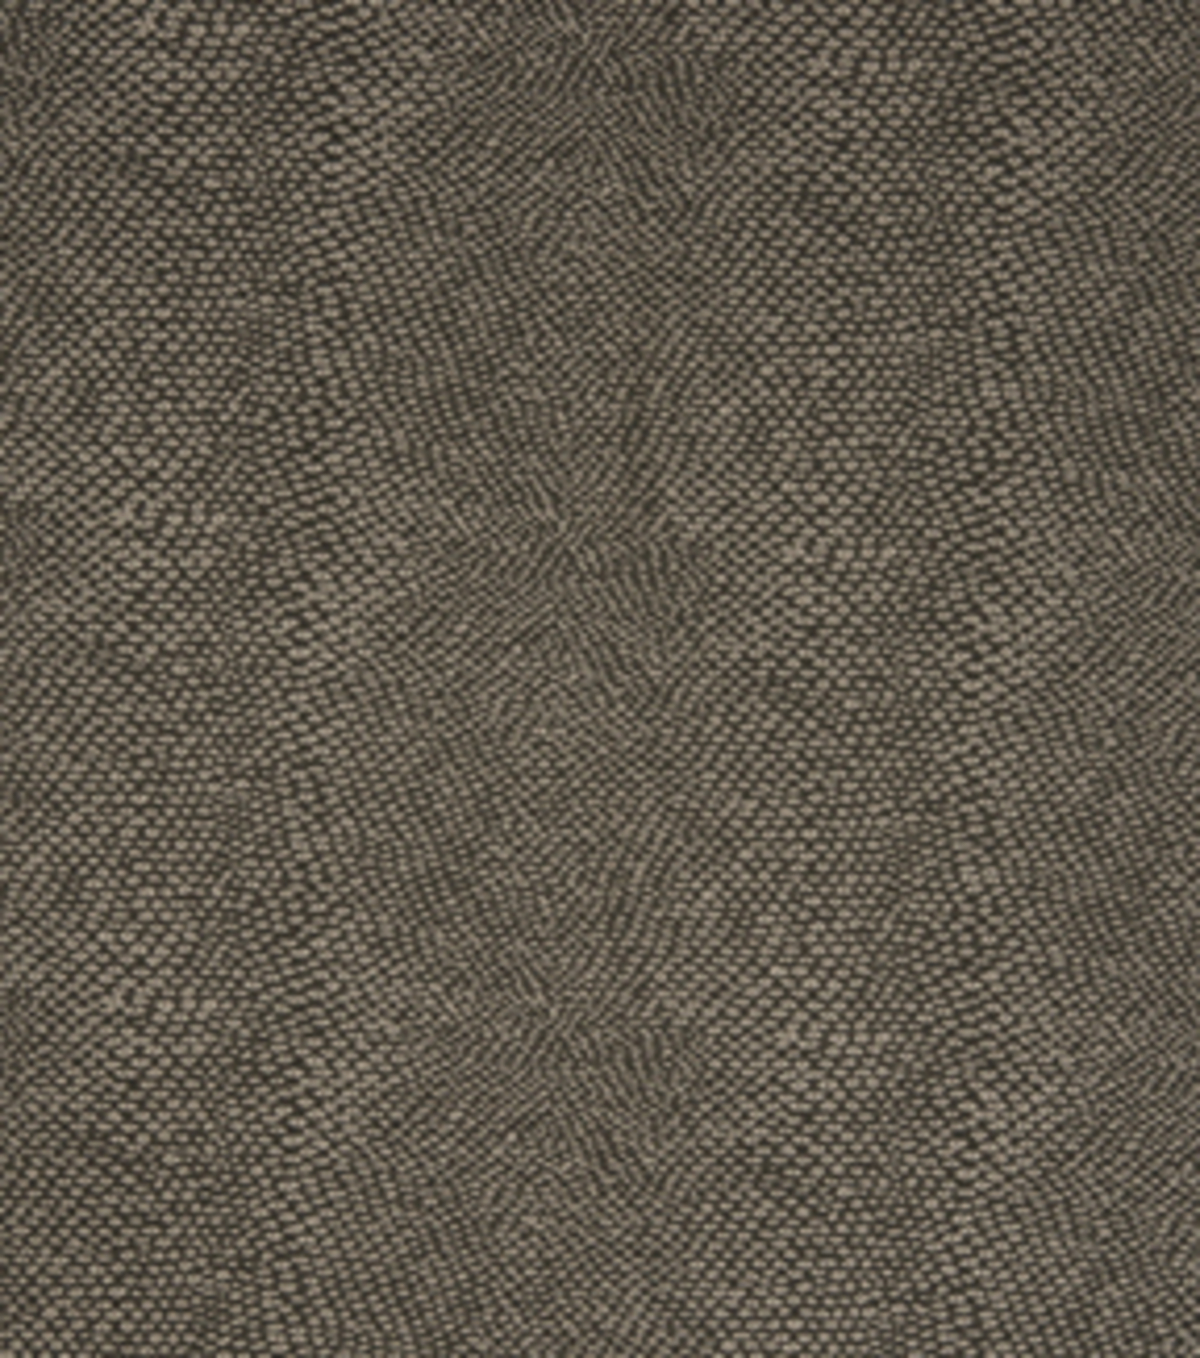 Home Decor 8\u0022x8\u0022 Fabric Swatch-Bella Dura Morton Onyx